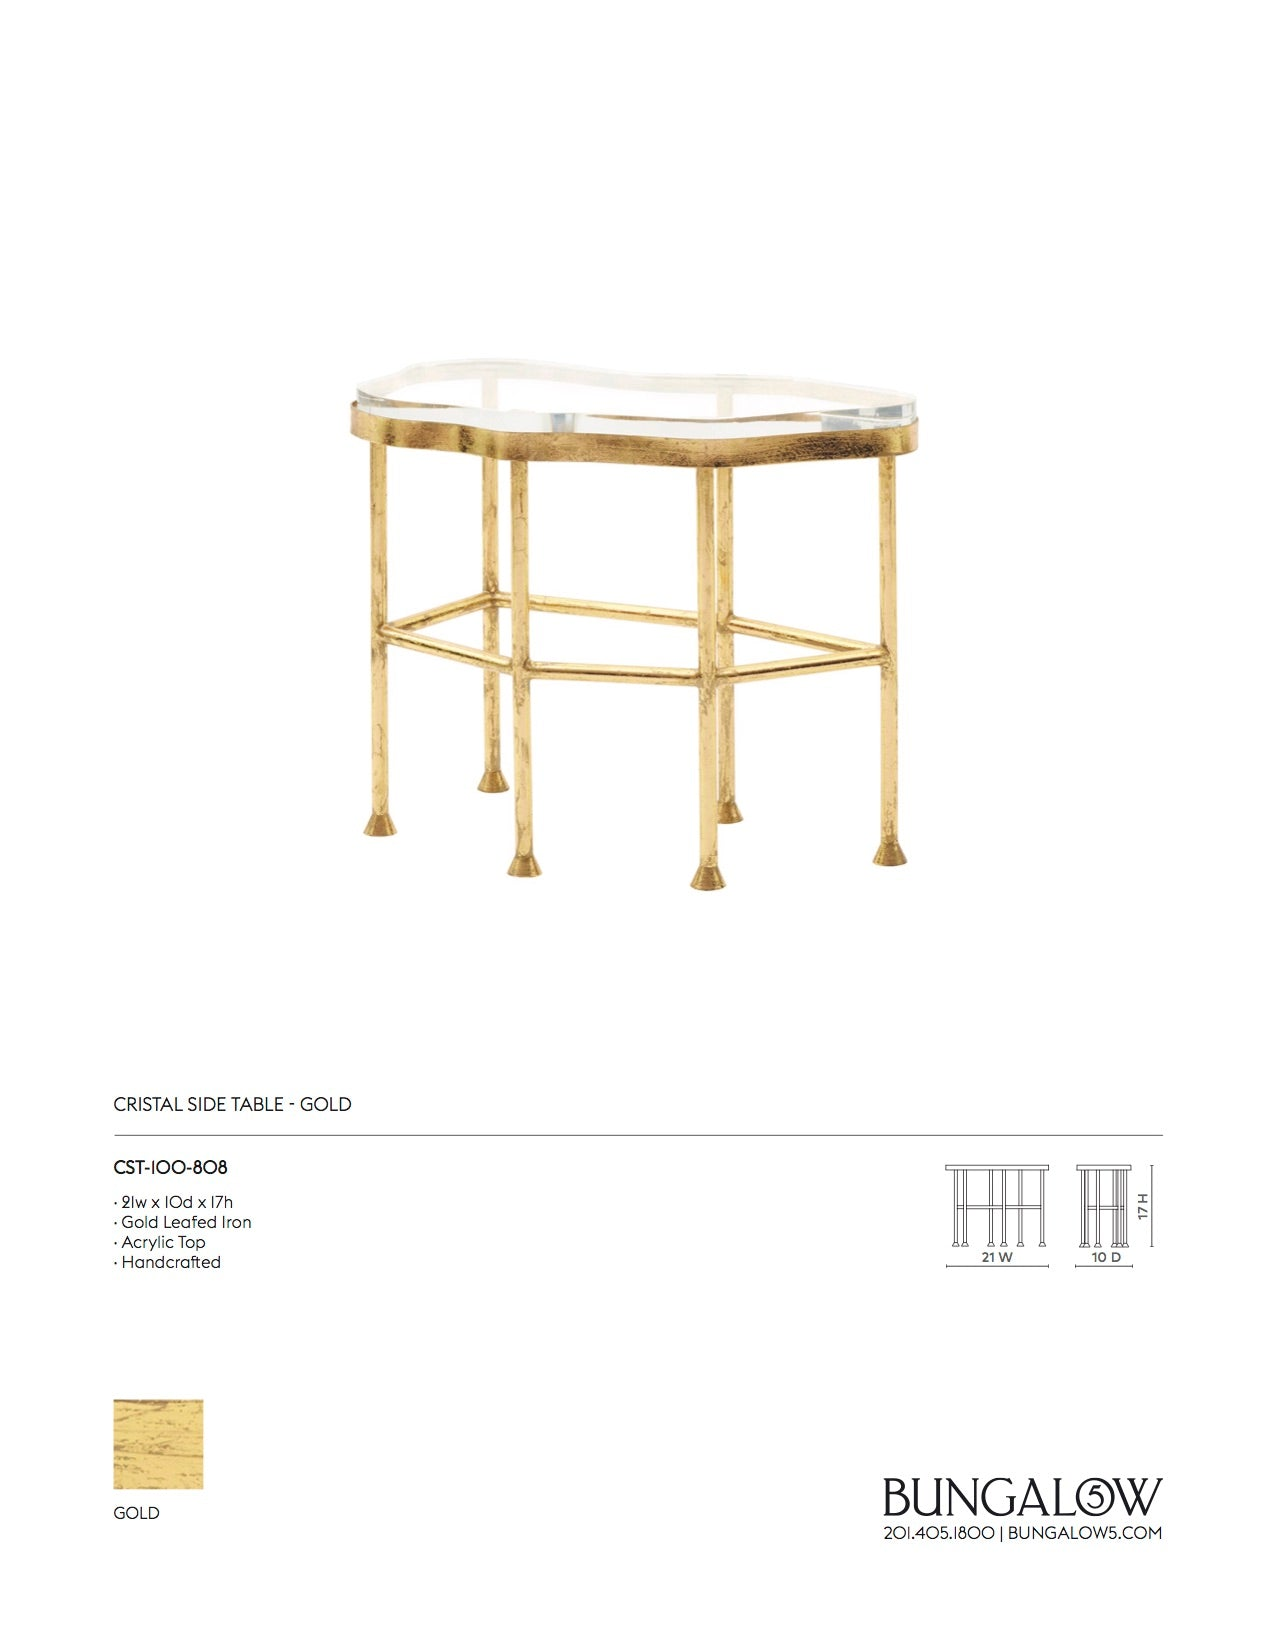 Bungalow 5 Cristal Side Table Gold Tearsheet